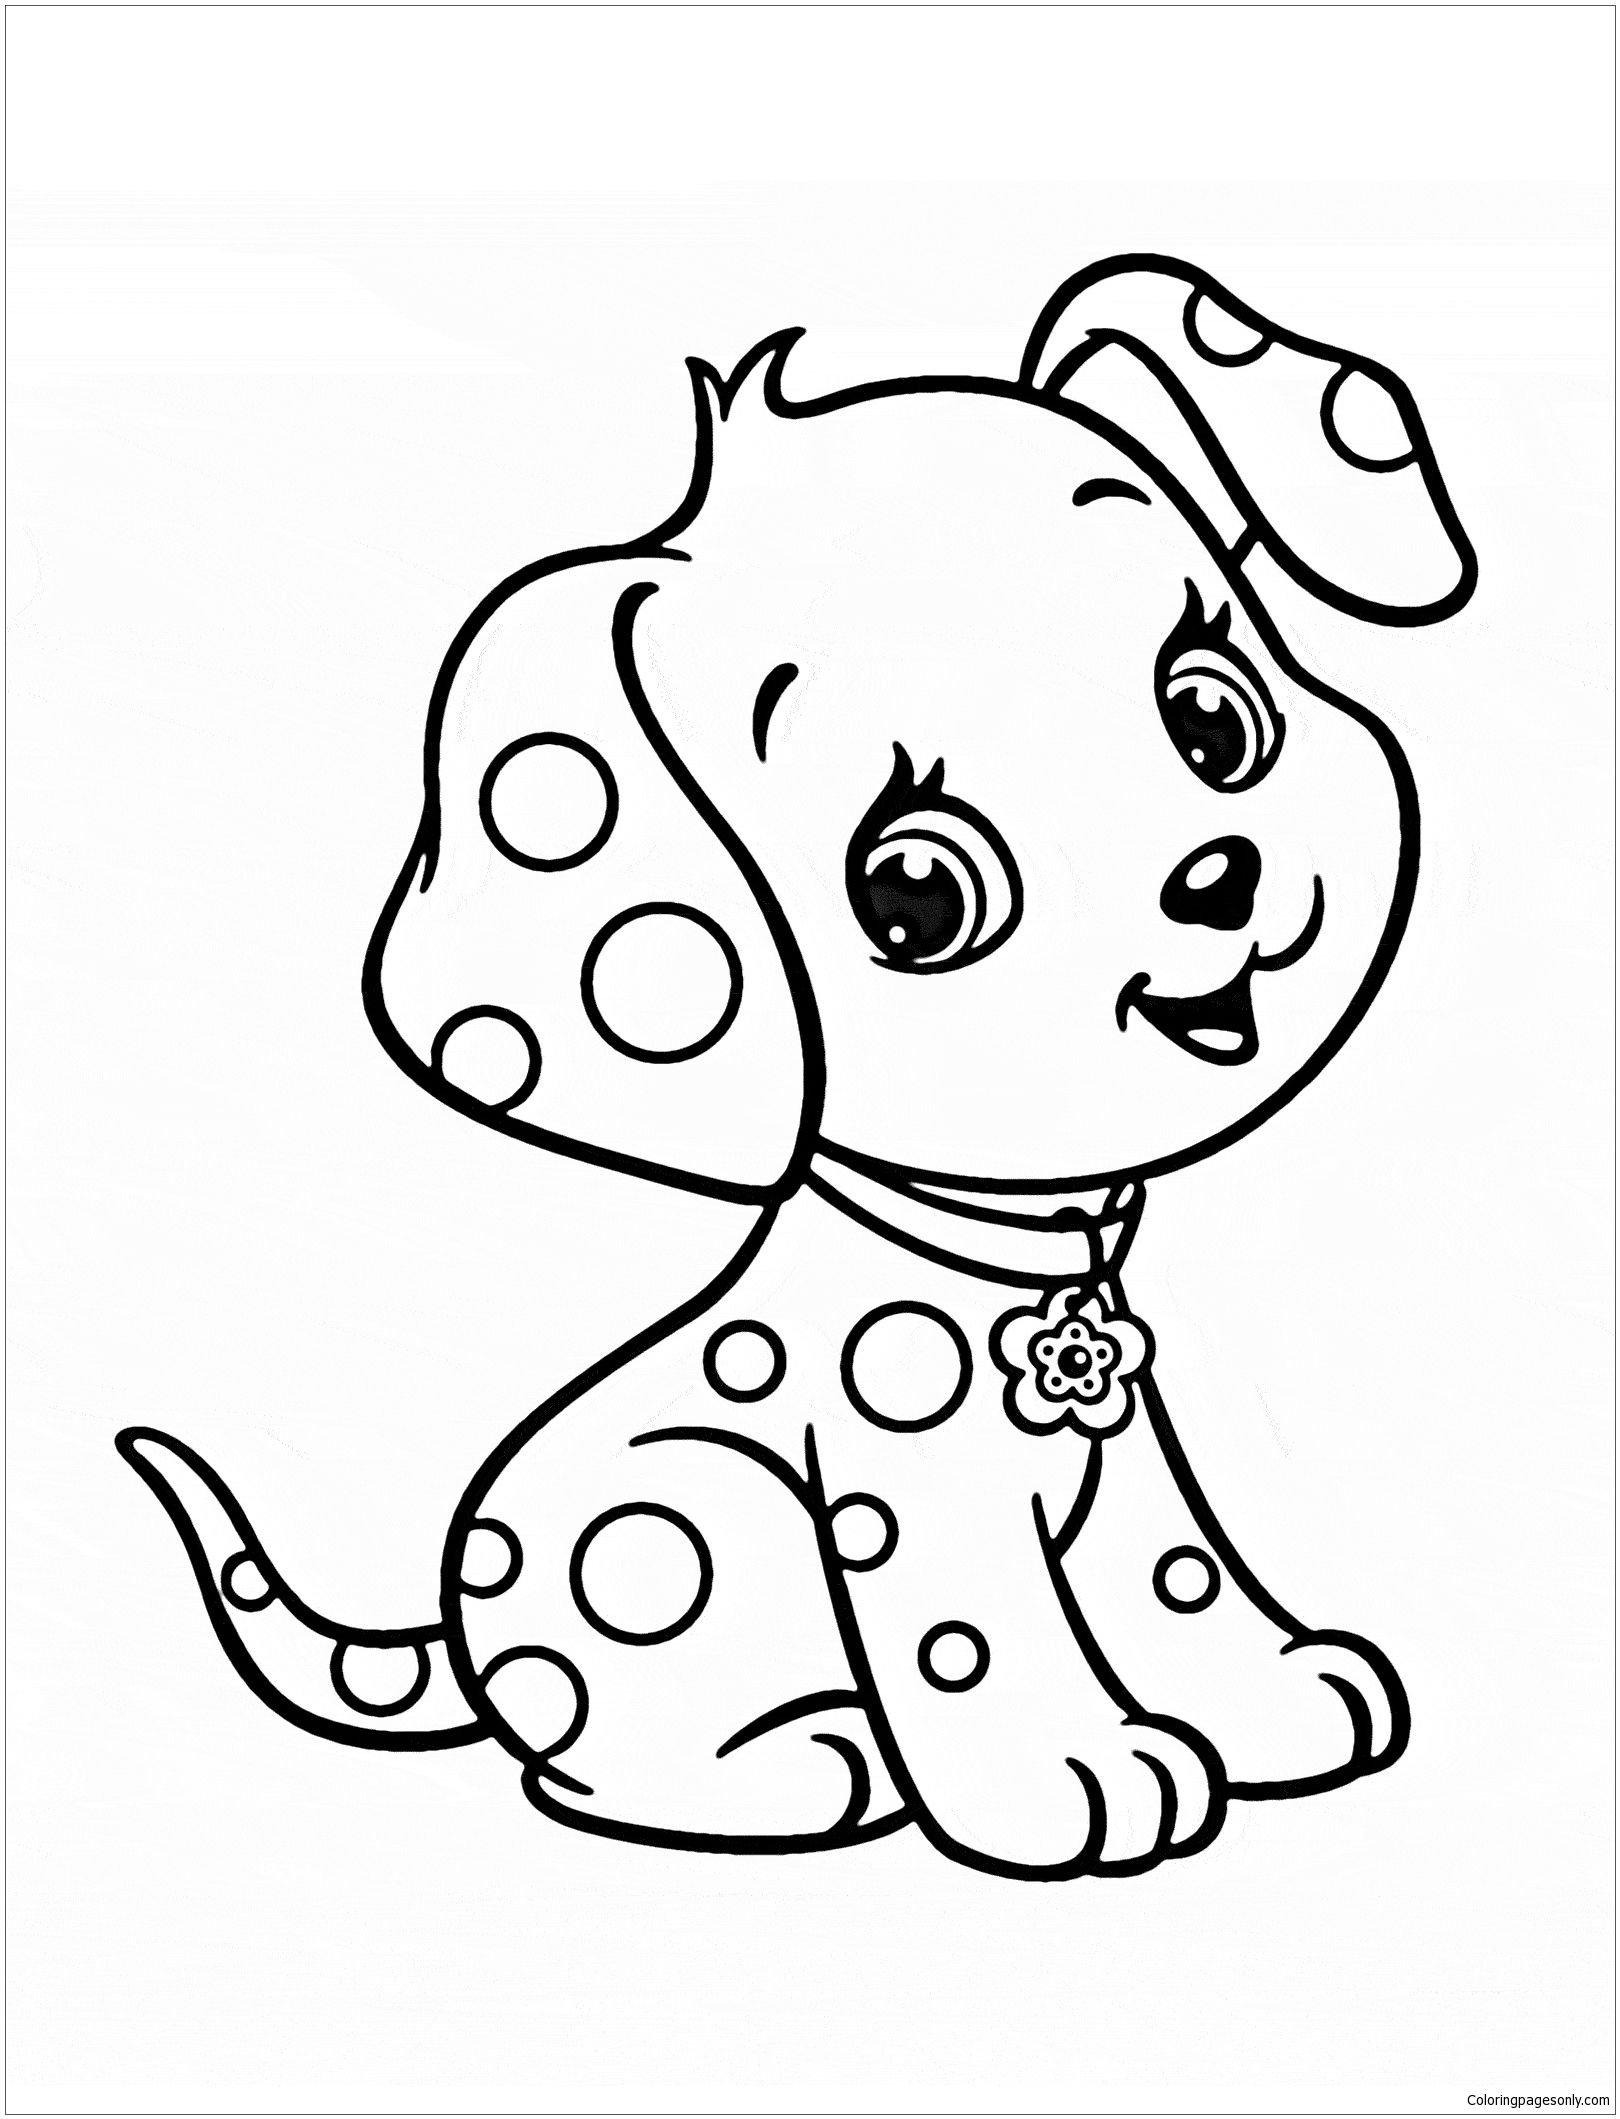 baby dog dog coloring pages cute puppy 5 coloring page crianças para colorir dog pages coloring dog baby